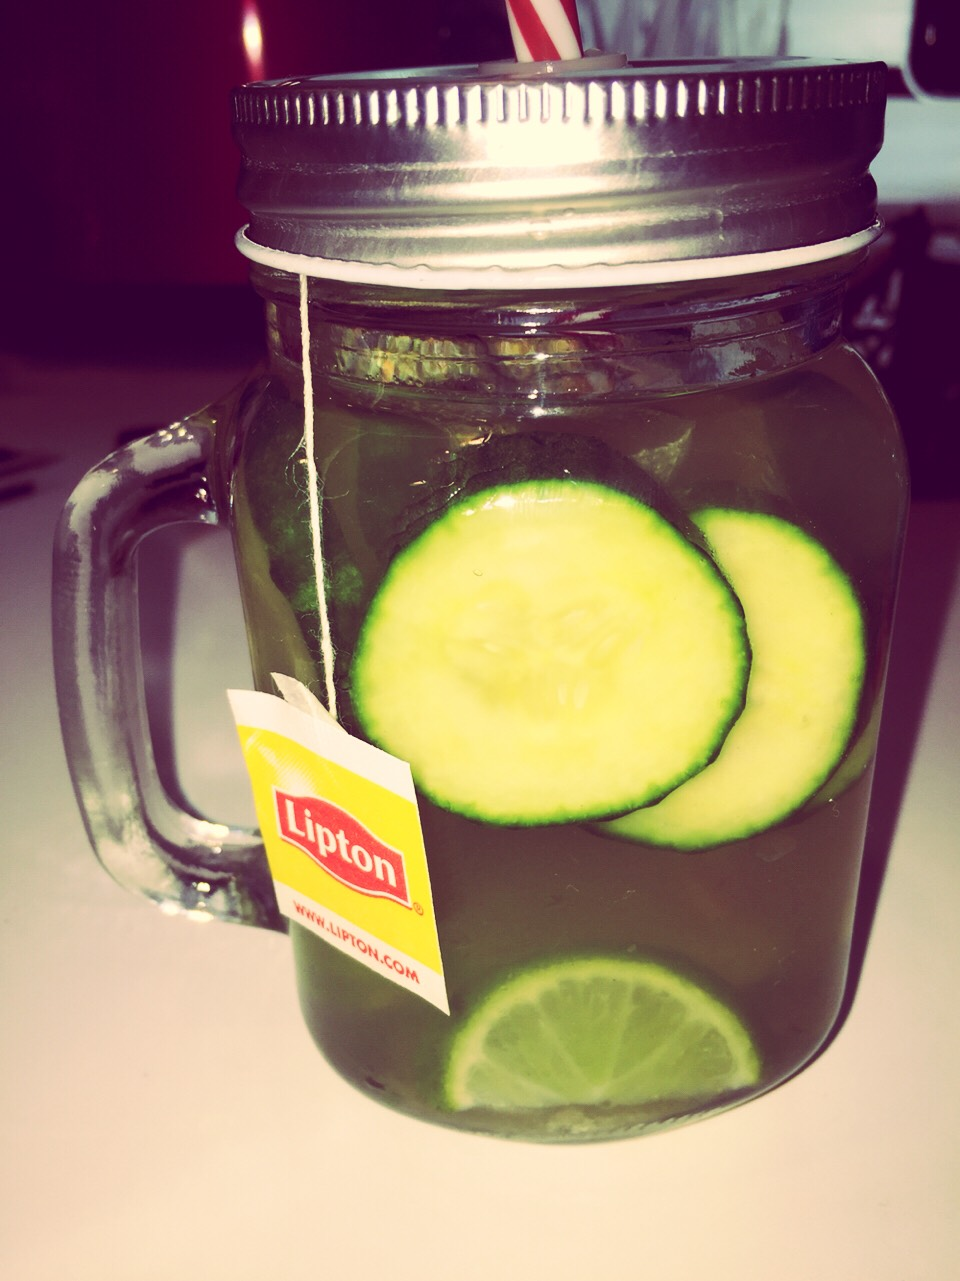 Cucumber-Lime-Lemon-Mint Detox Water:  Ingredients: 4 slices of Lime 6 slices of Cucmber 1/4 cup of lemon juice 1 peppermint tea bag (keep the string outside of the jar) Water  Put all the ingredients in a jar with a lid. Fill the jar with water.Shake the jar untilmixed well. Then refrigerate.